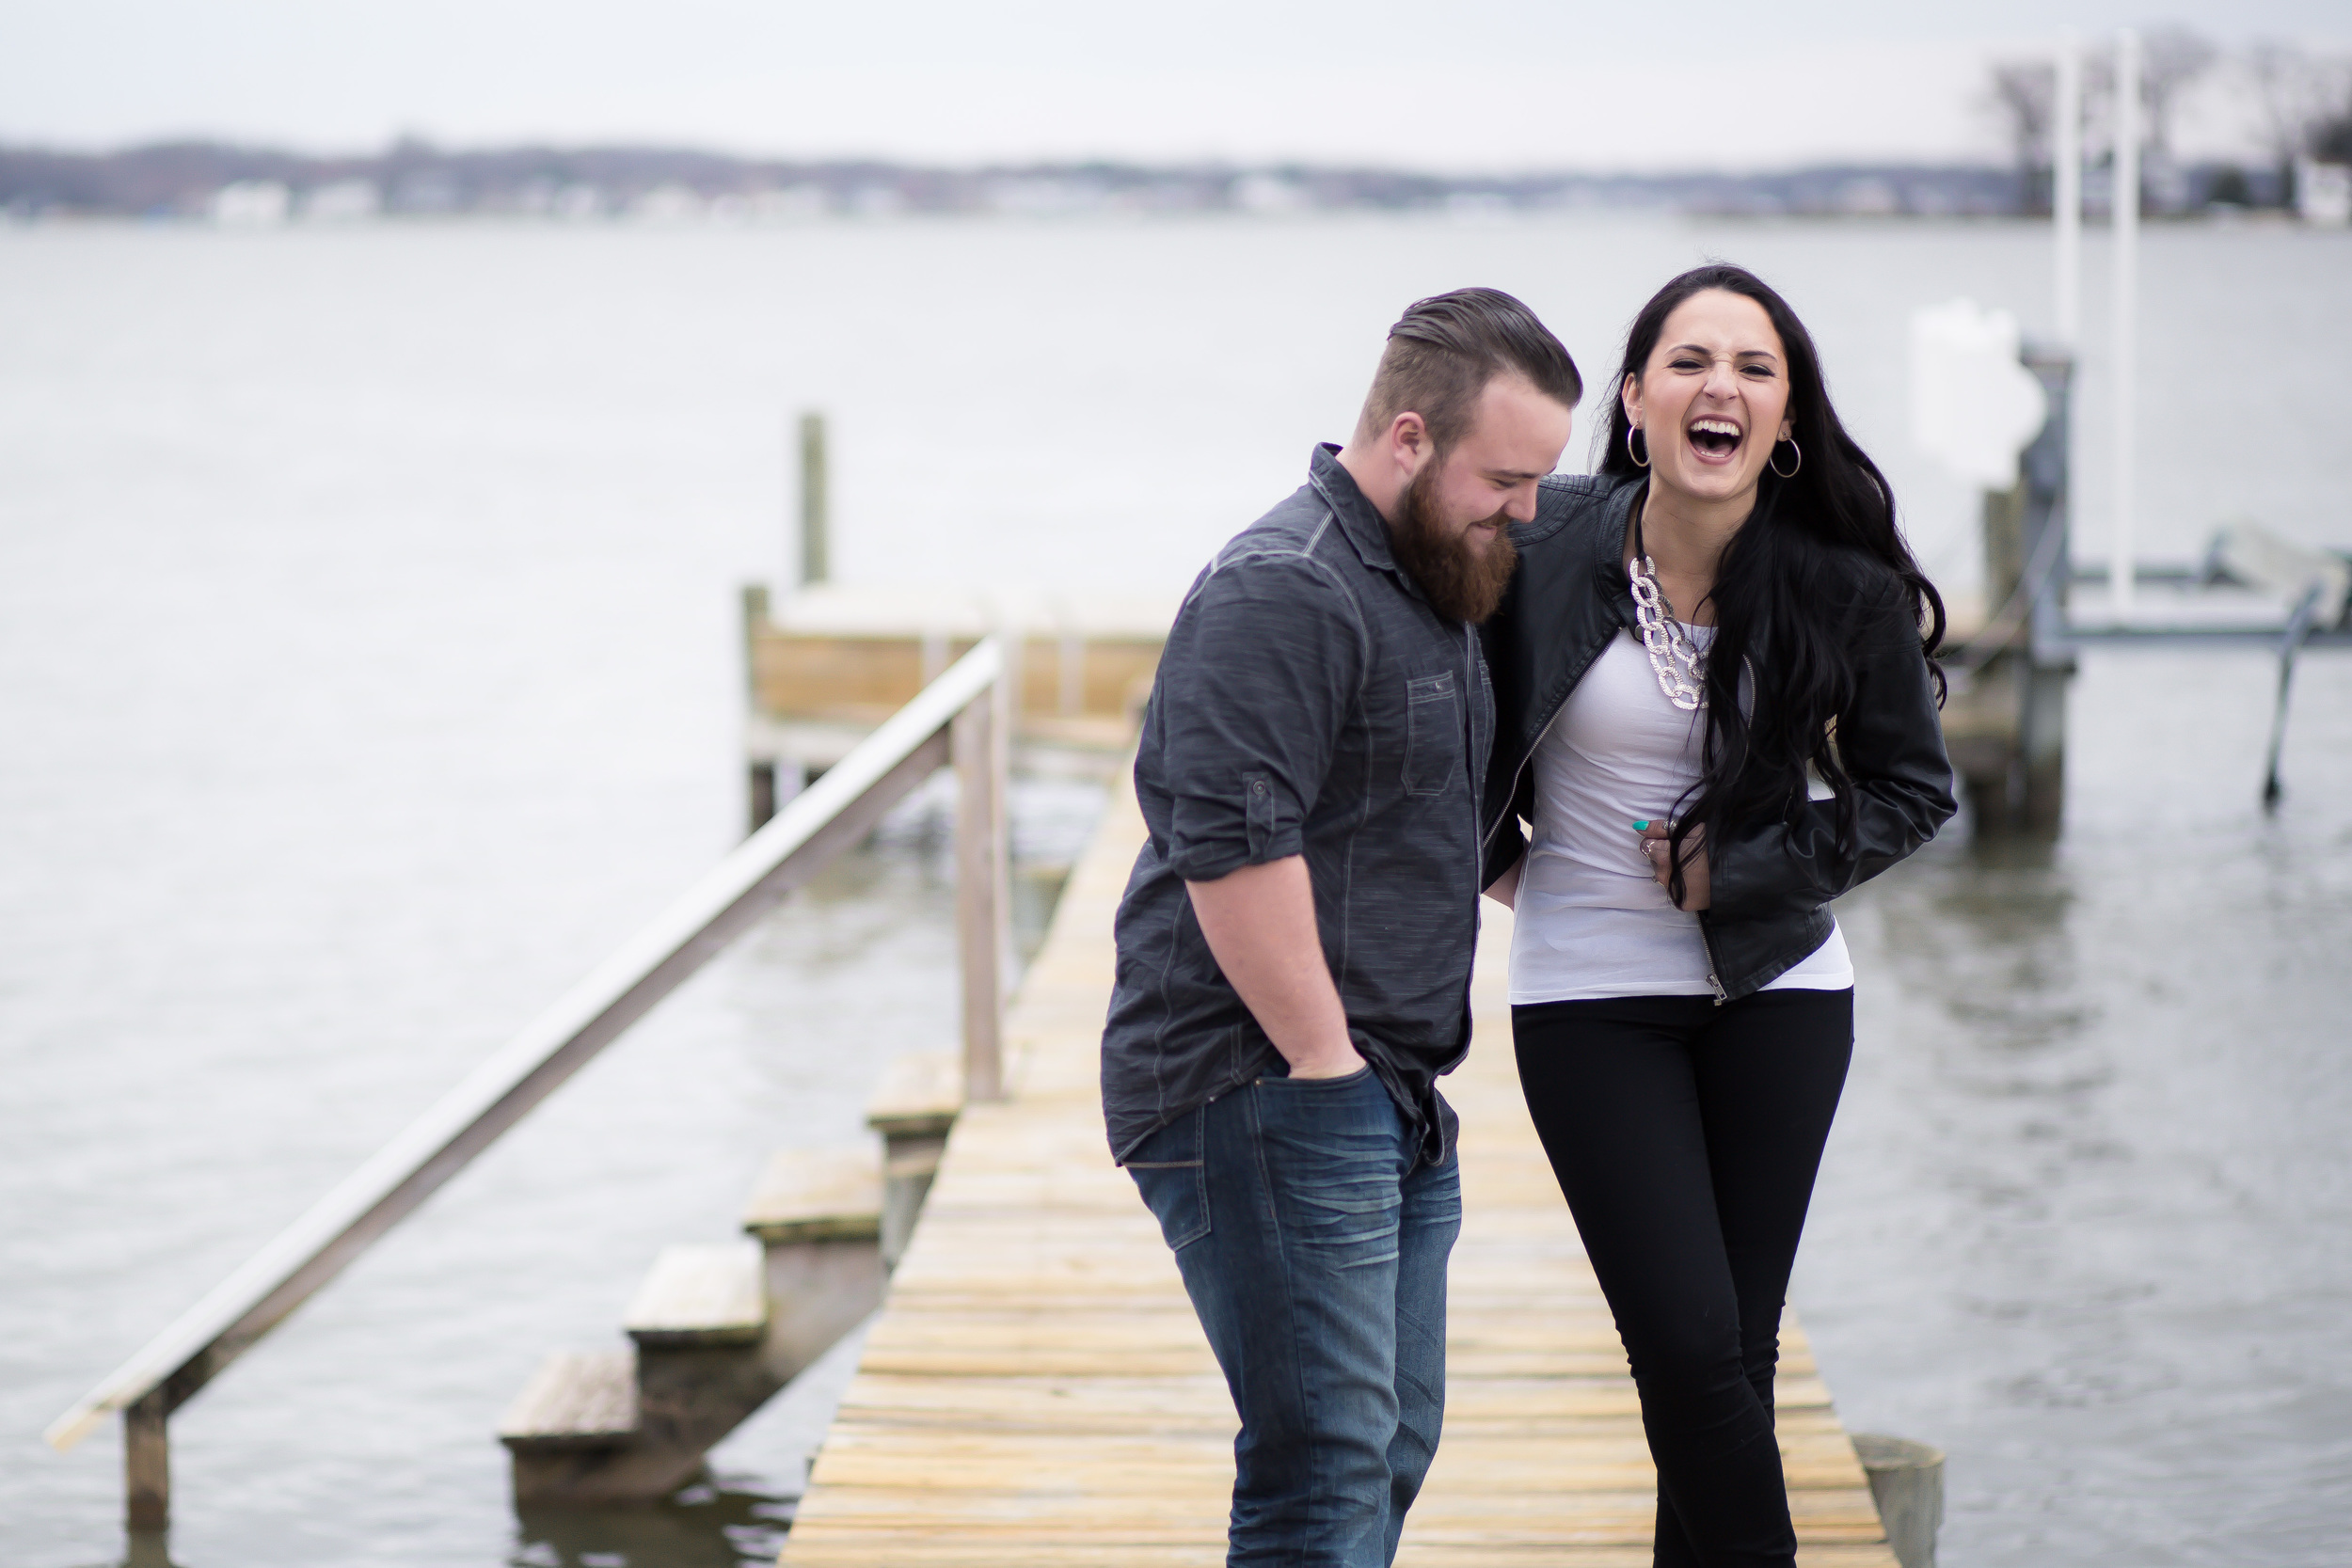 Bowleys Quarter Maryland Engagement Photoshoot on the water